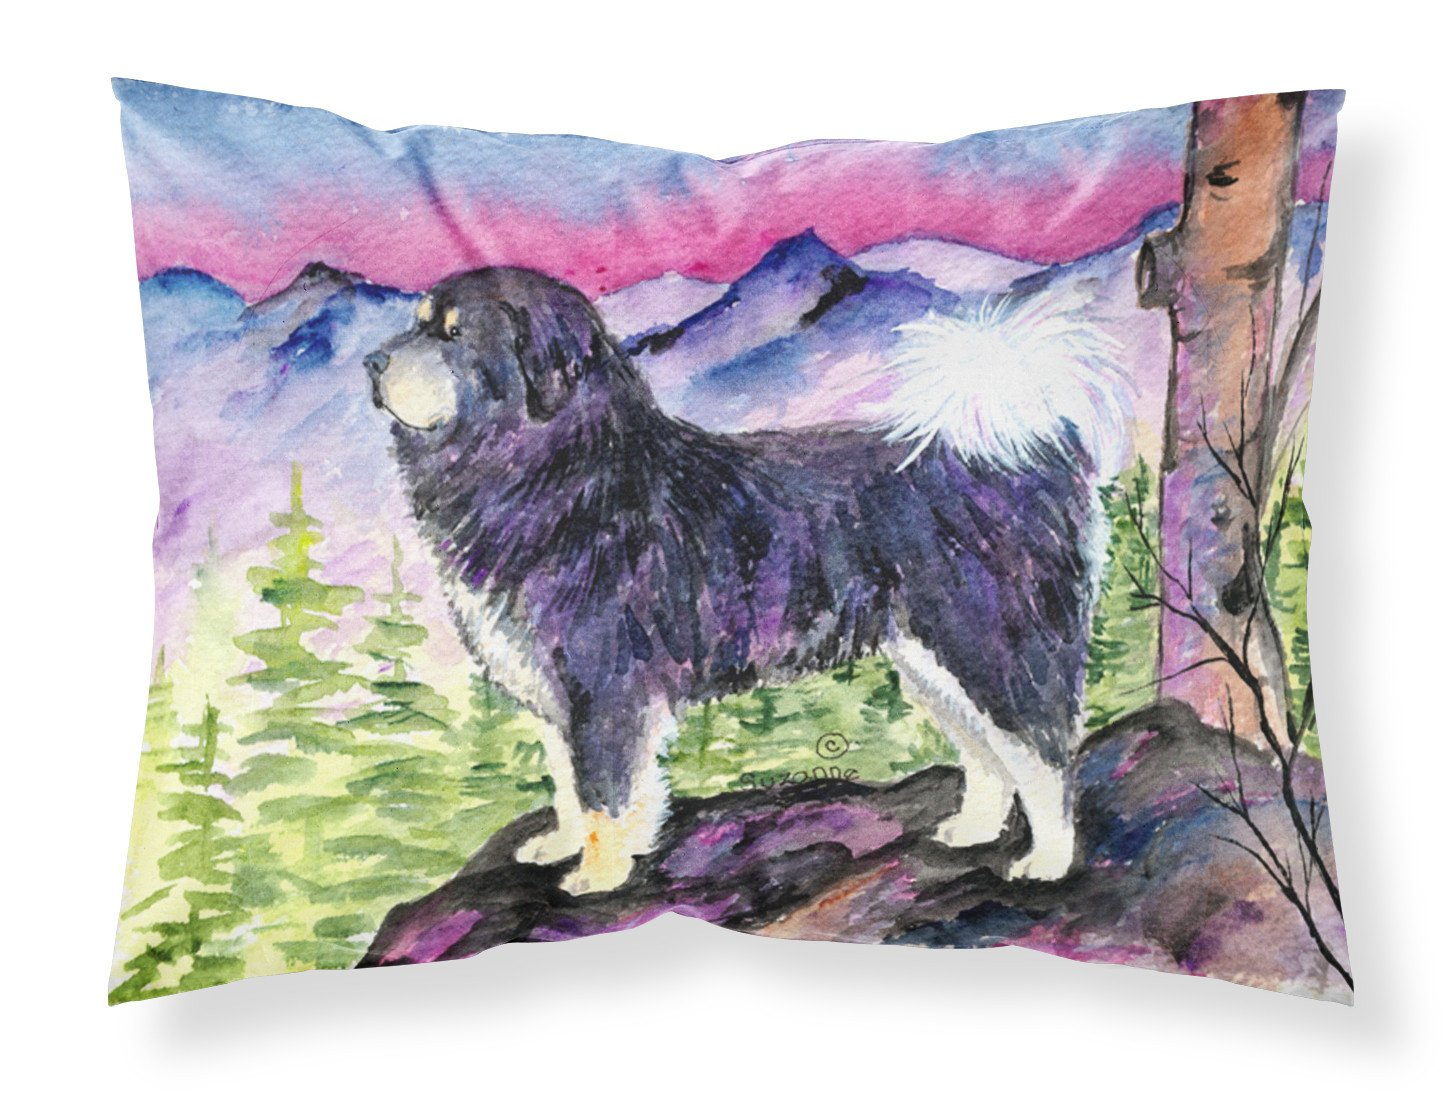 Tibetan Mastiff Moisture wicking Fabric standard pillowcase by Caroline's Treasures